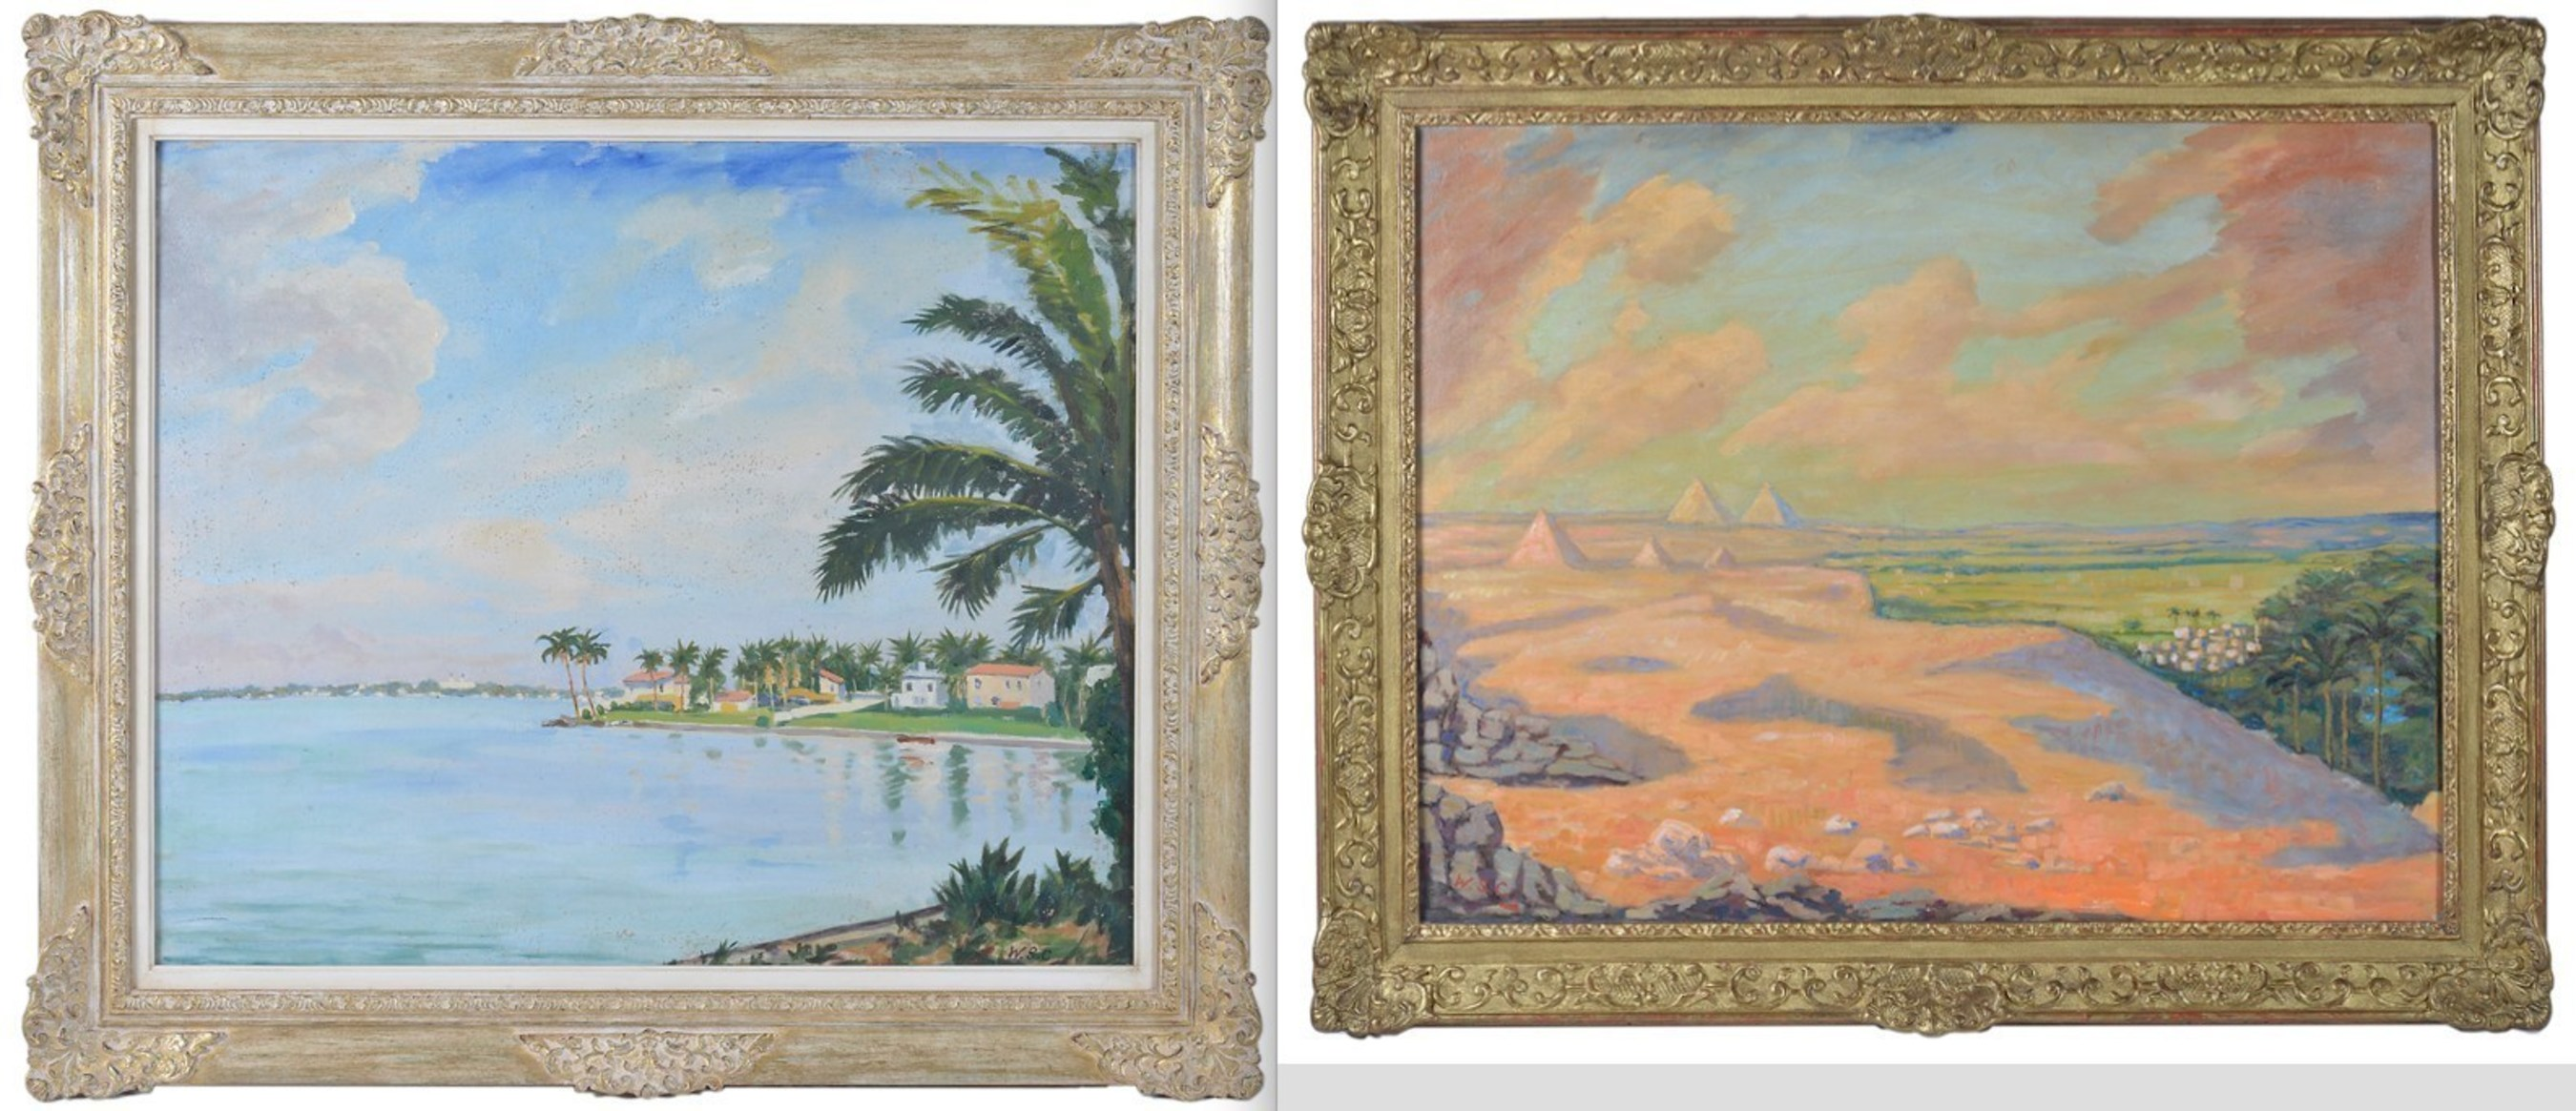 Winston Churchill's 1946 paintings of Miami Beach and Giza Pyramids to Be Auctioned July 27